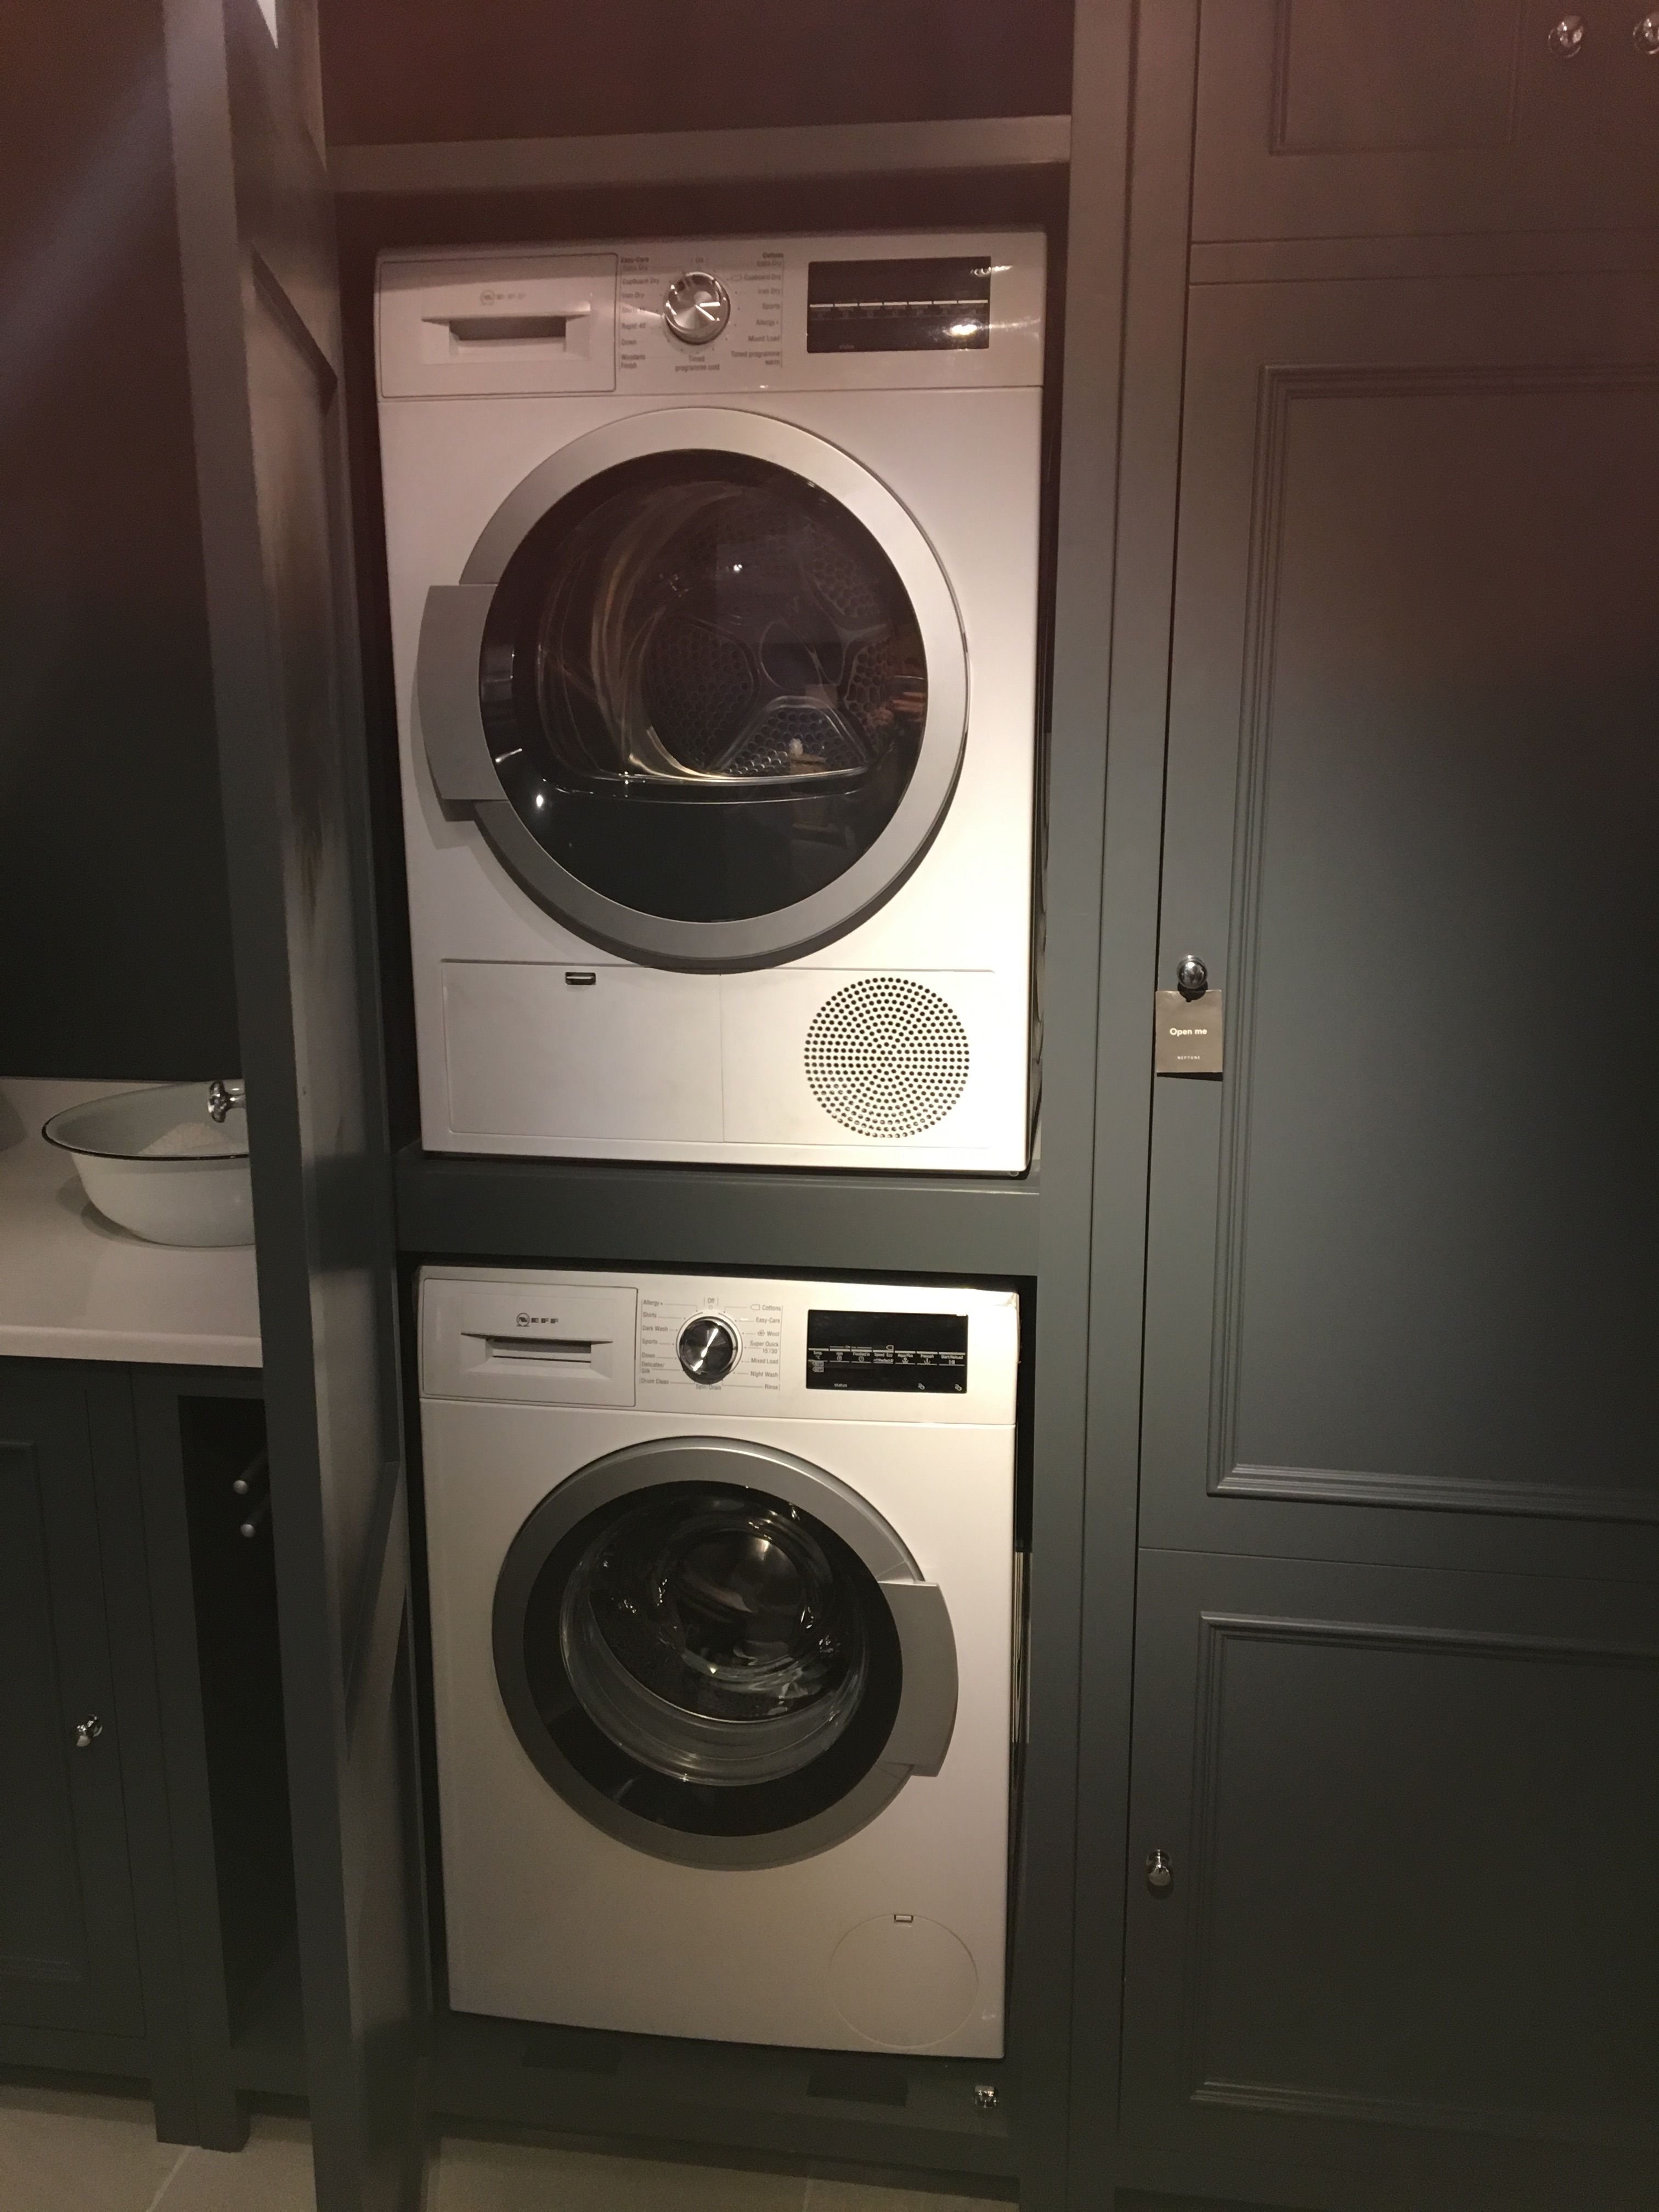 Stacked Washing Machine And Tumble Dryer Vintage Laundry Room